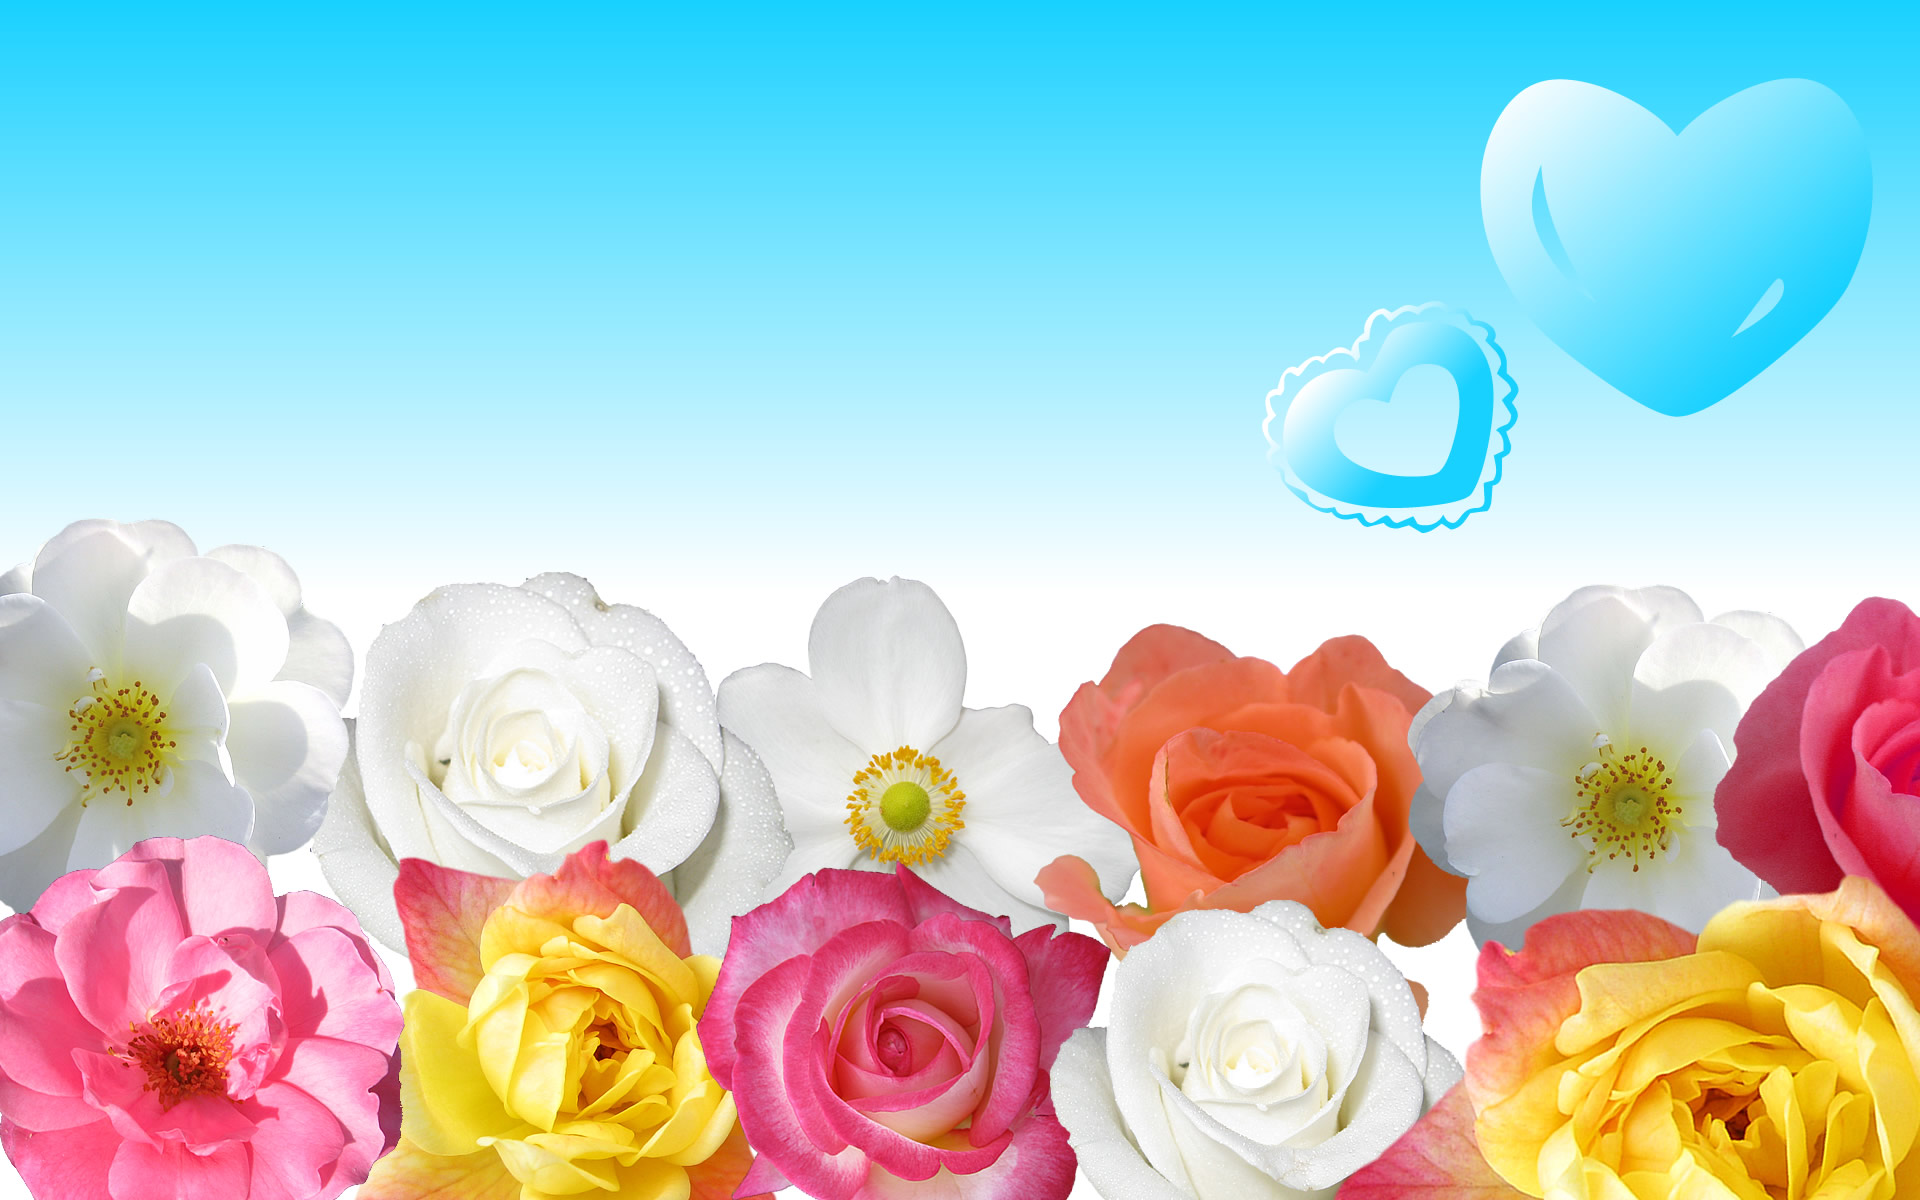 Free floral images download picture free download Download Free Flower Wallpapers picture free download